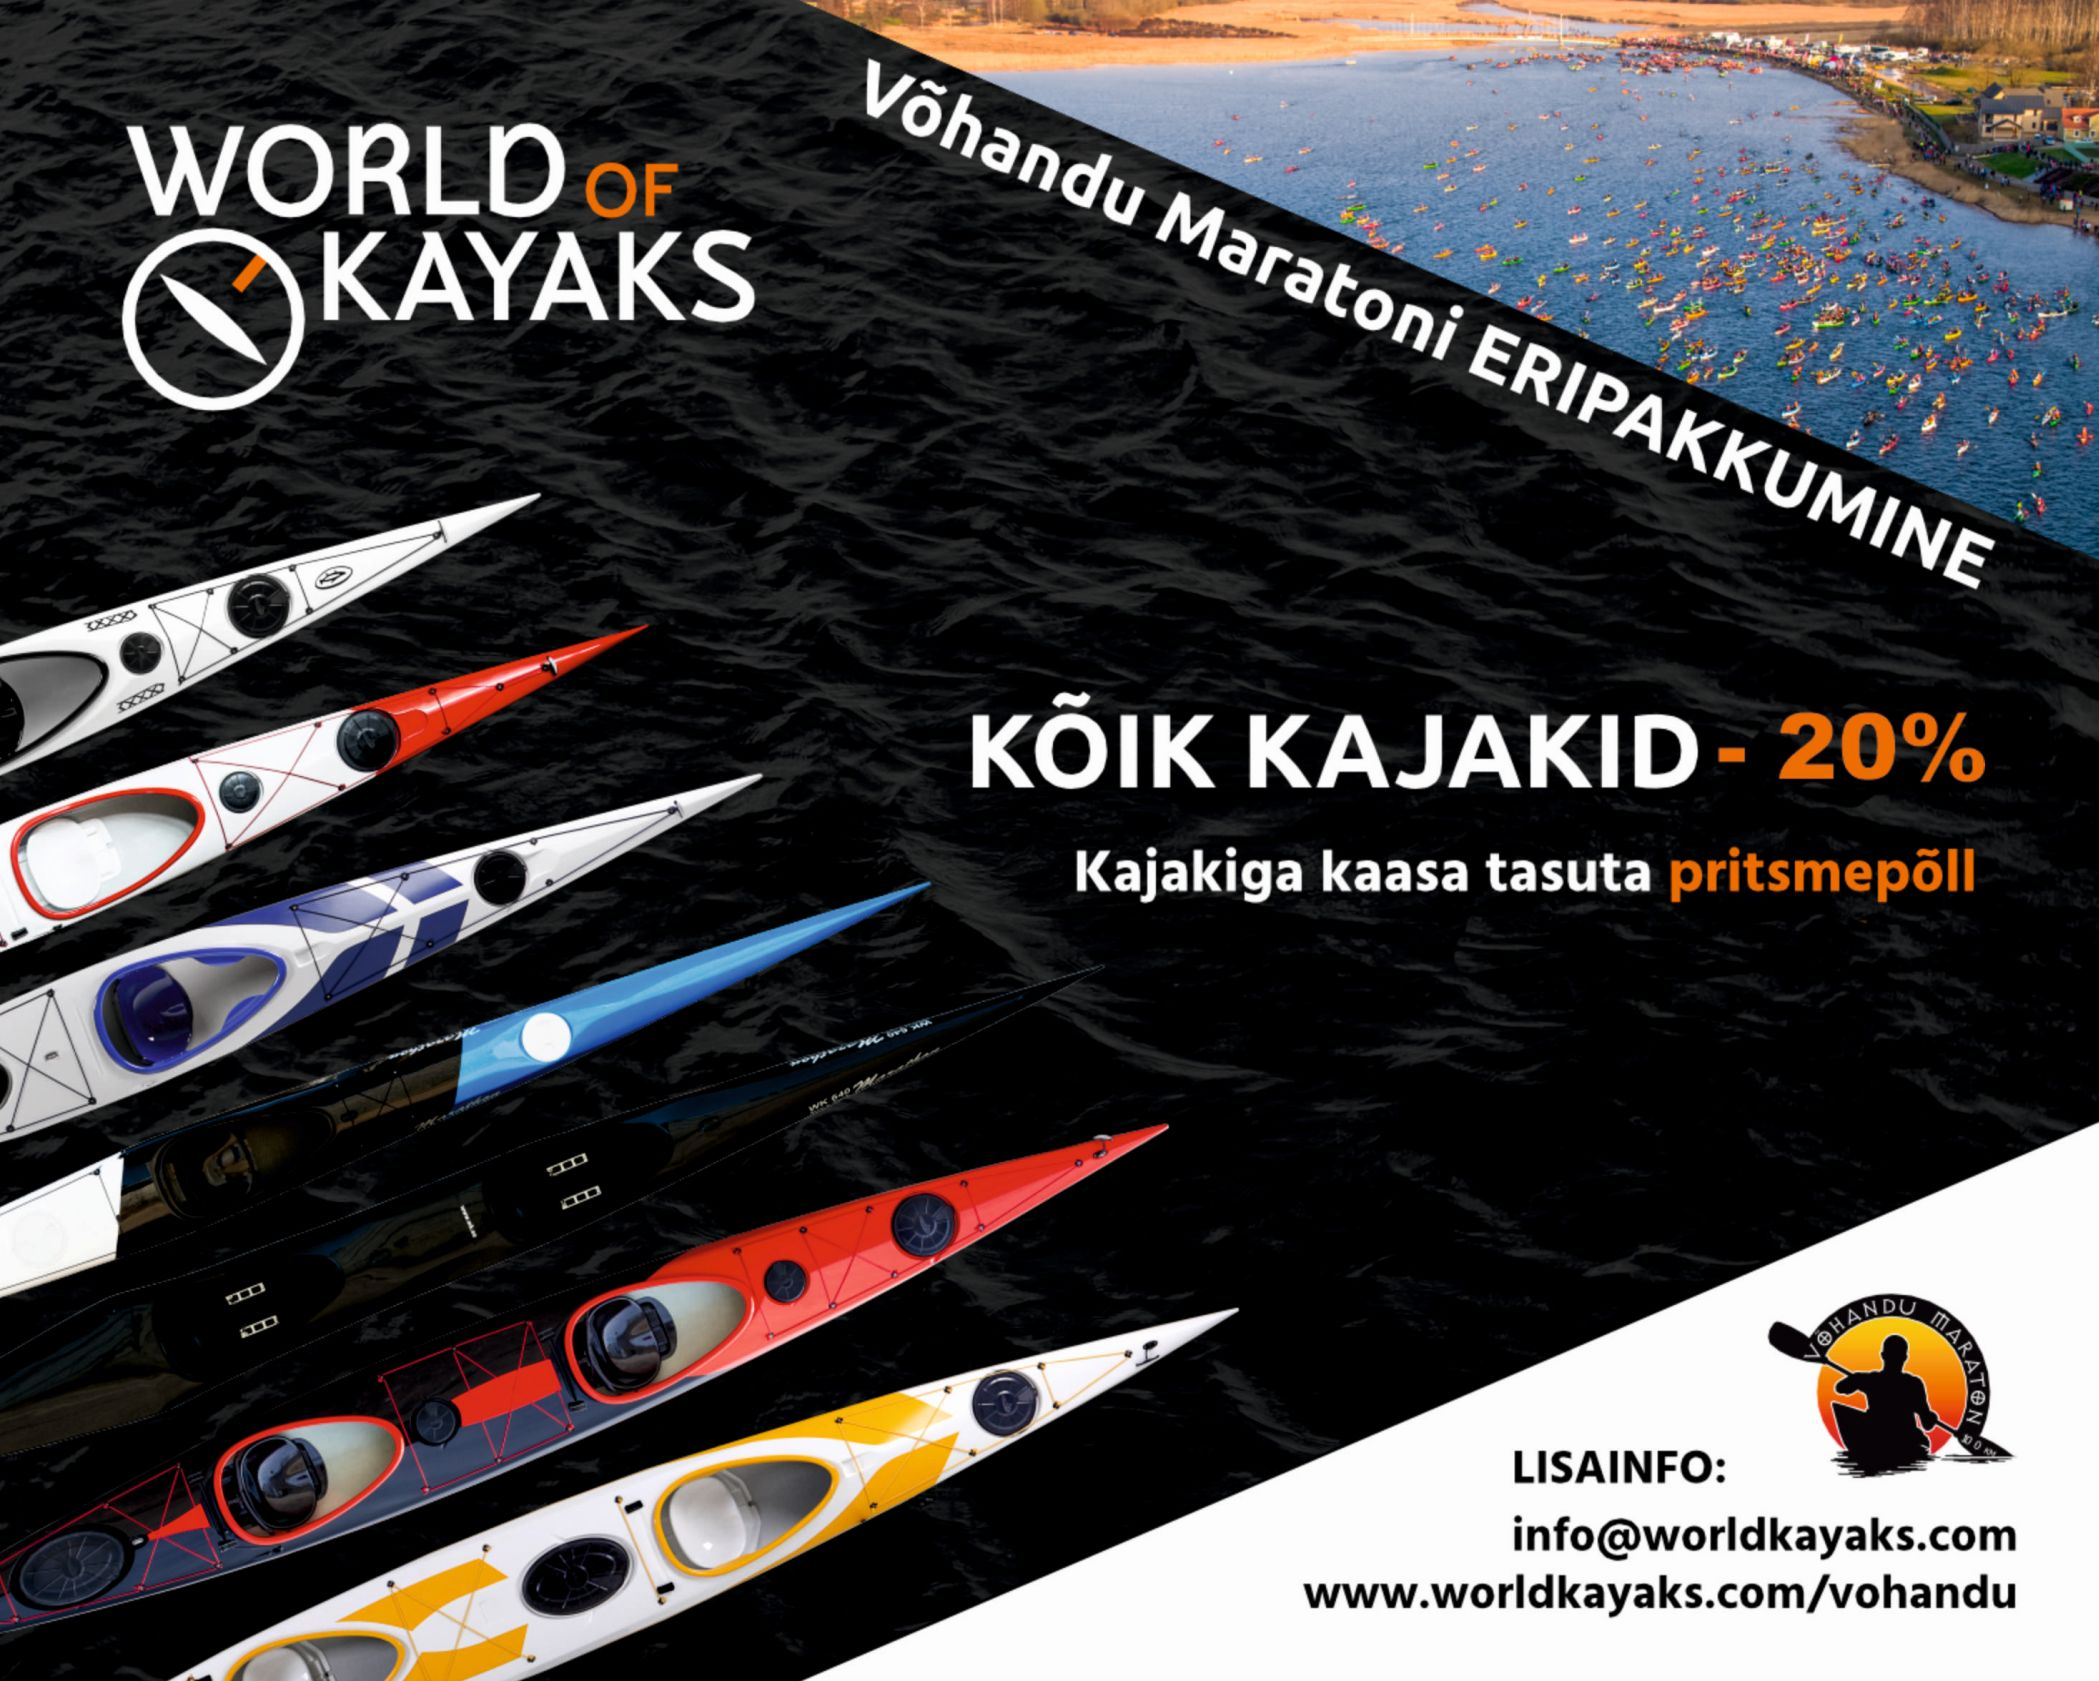 World of Kayaks